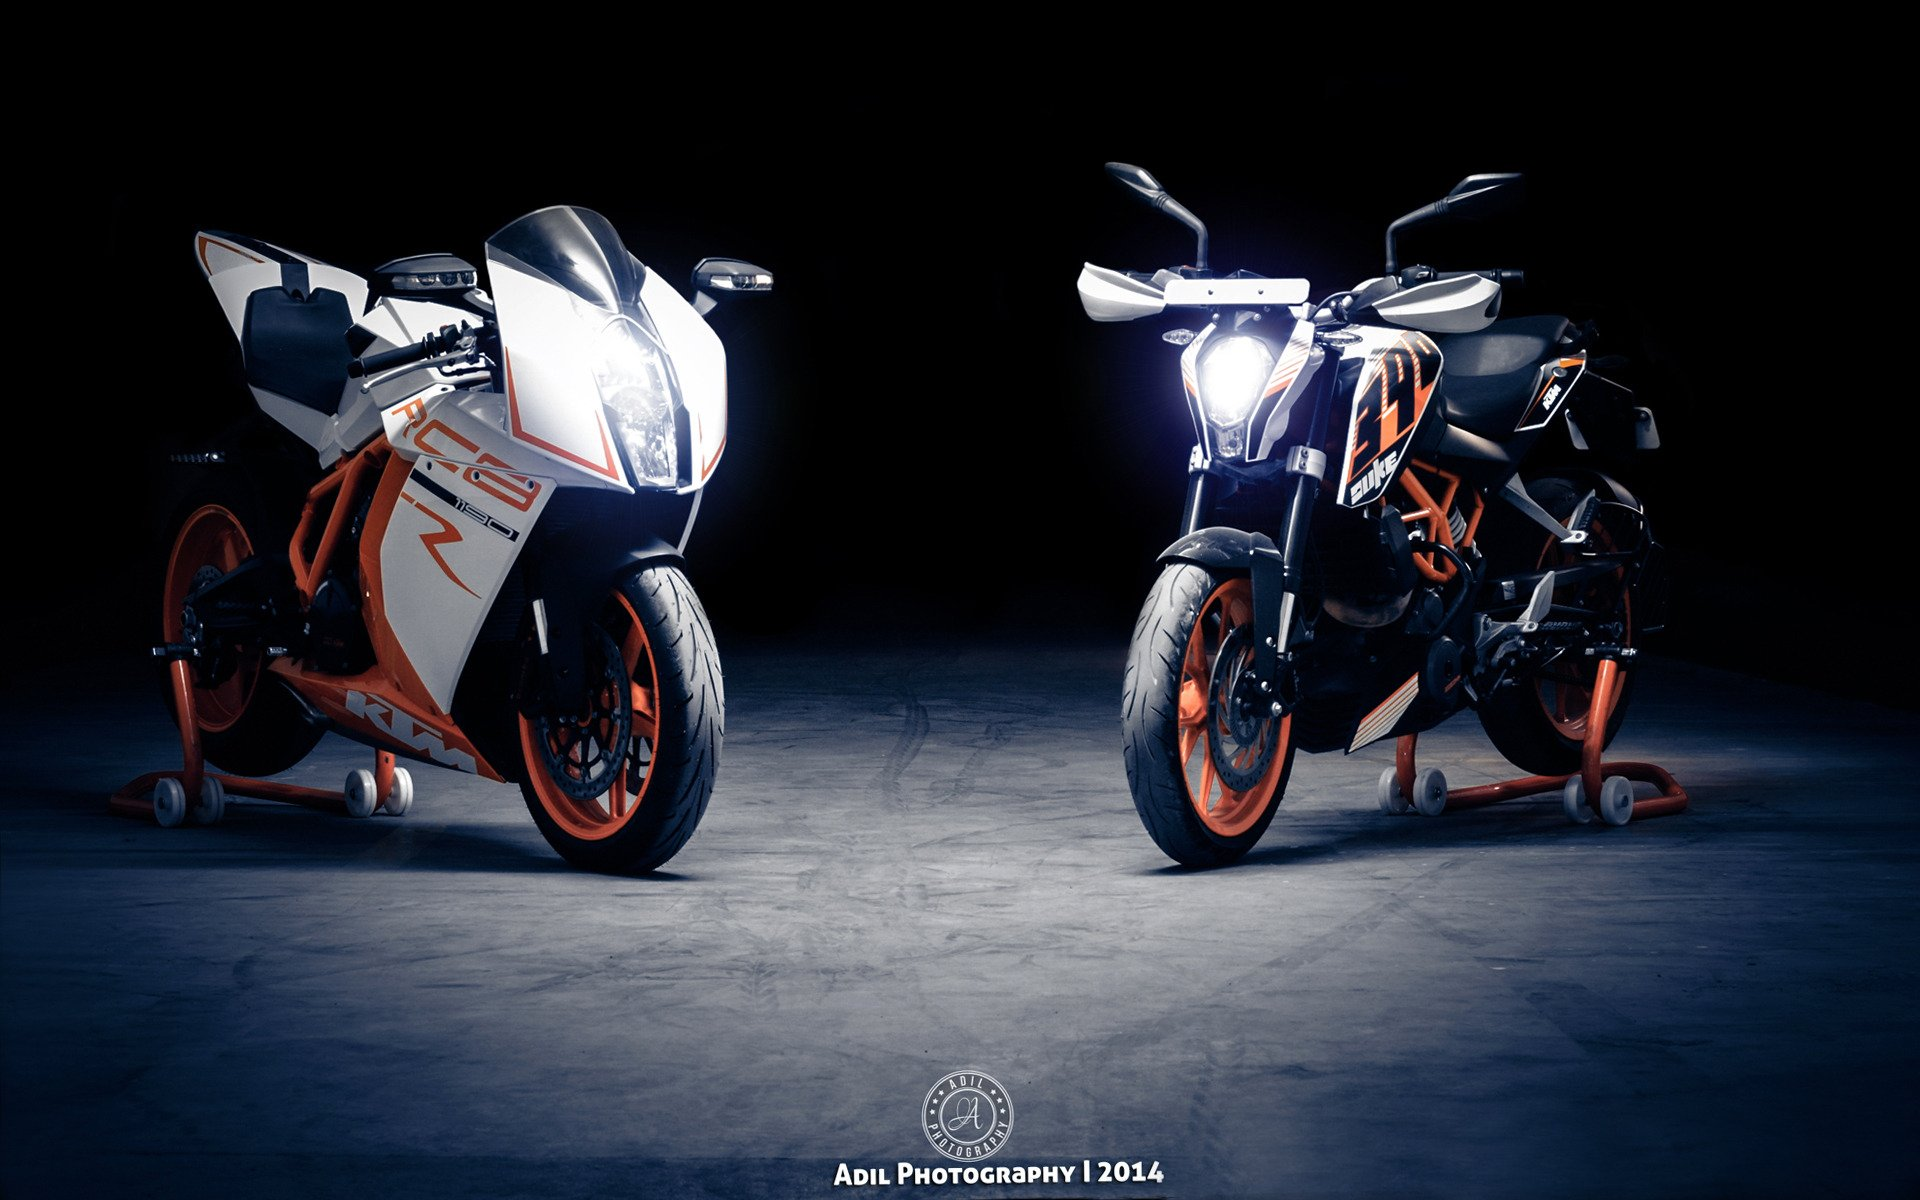 1920x1200 - KTM RC8 Wallpapers 9